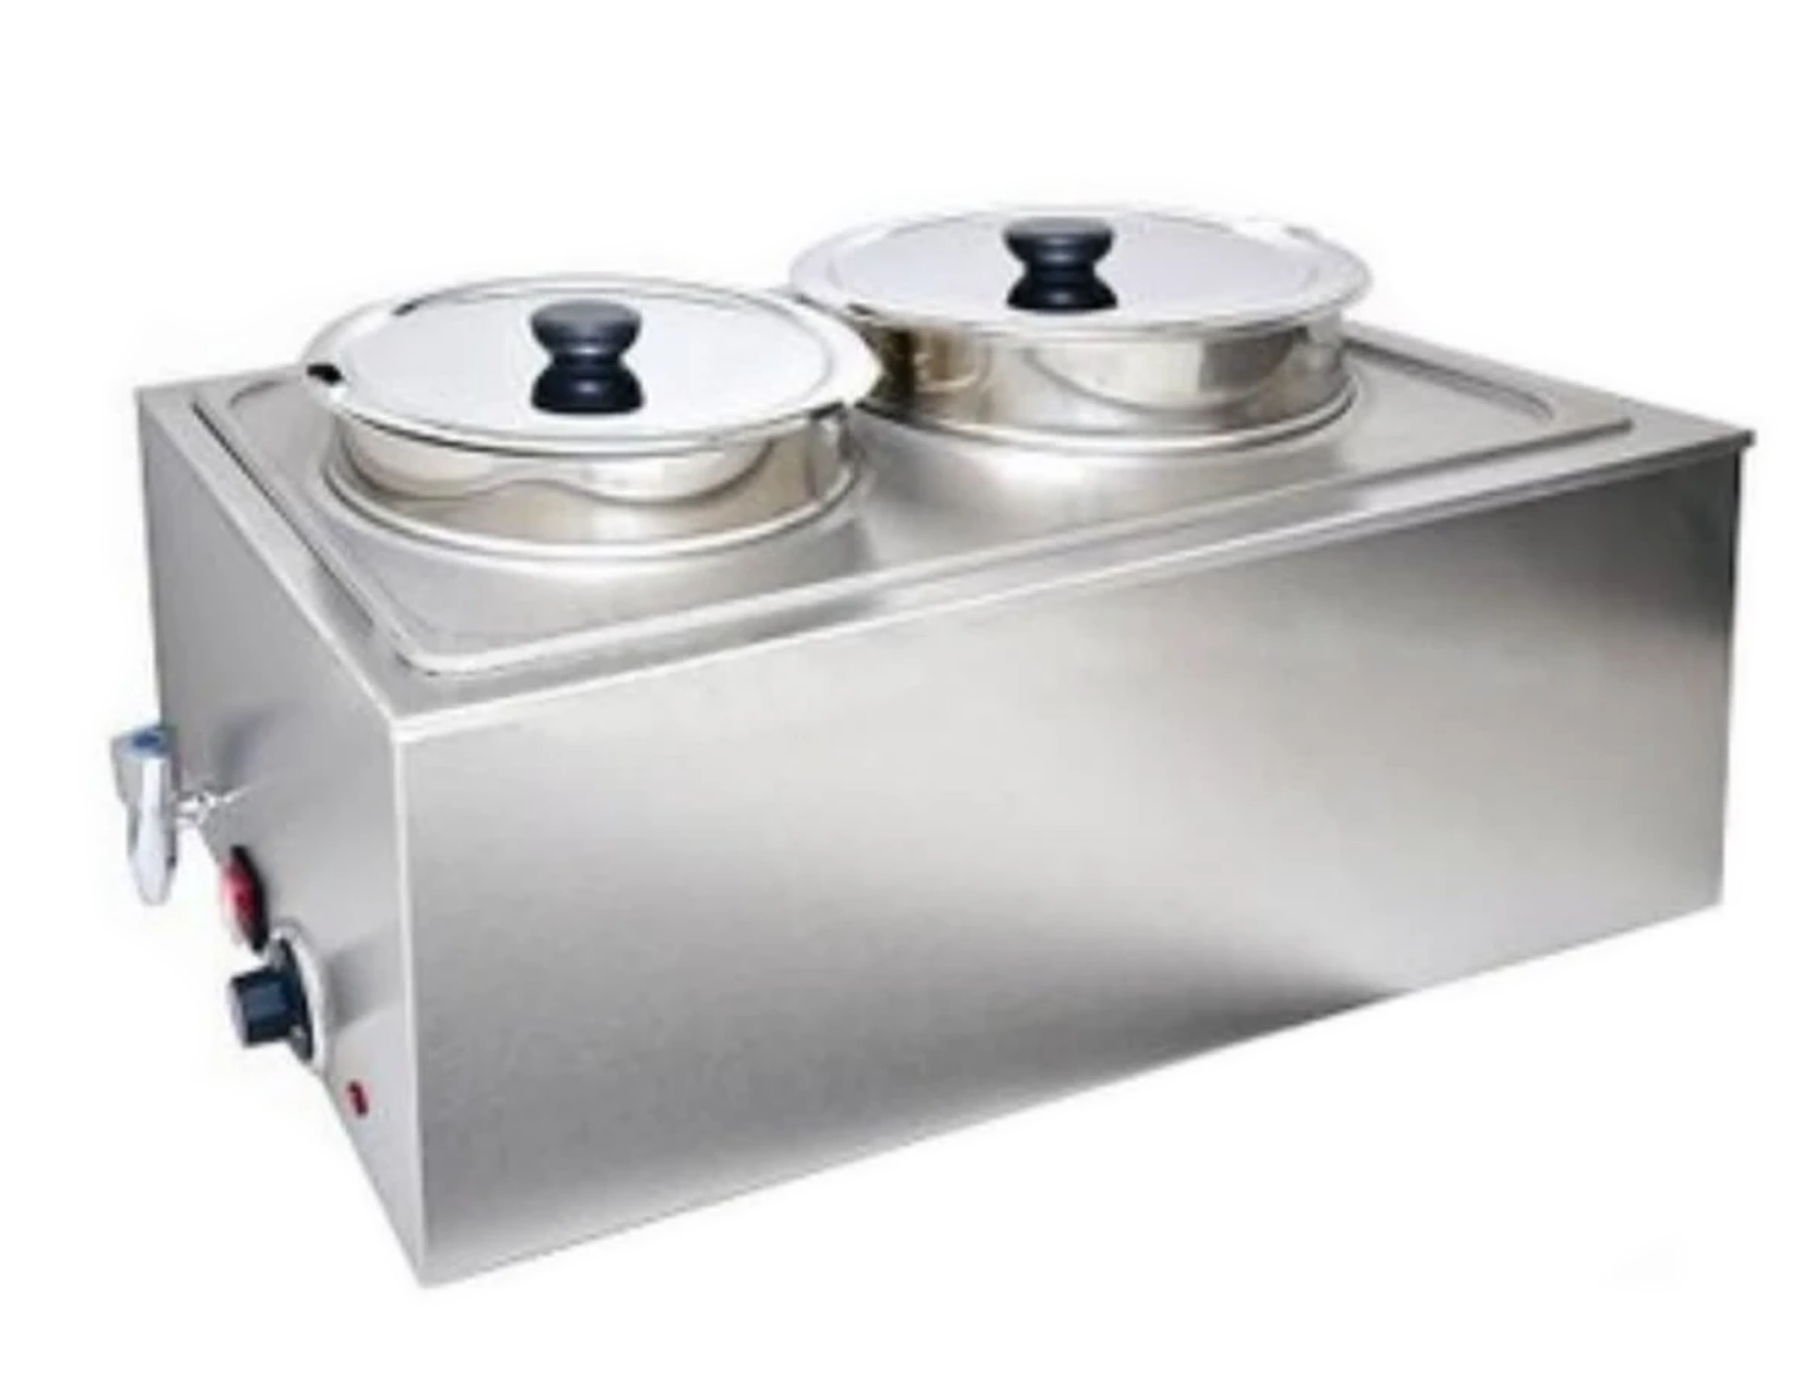 Omega ZCK165AT-4 Full Size Stainless Steel Electric Food Warmer with Soup Inserts